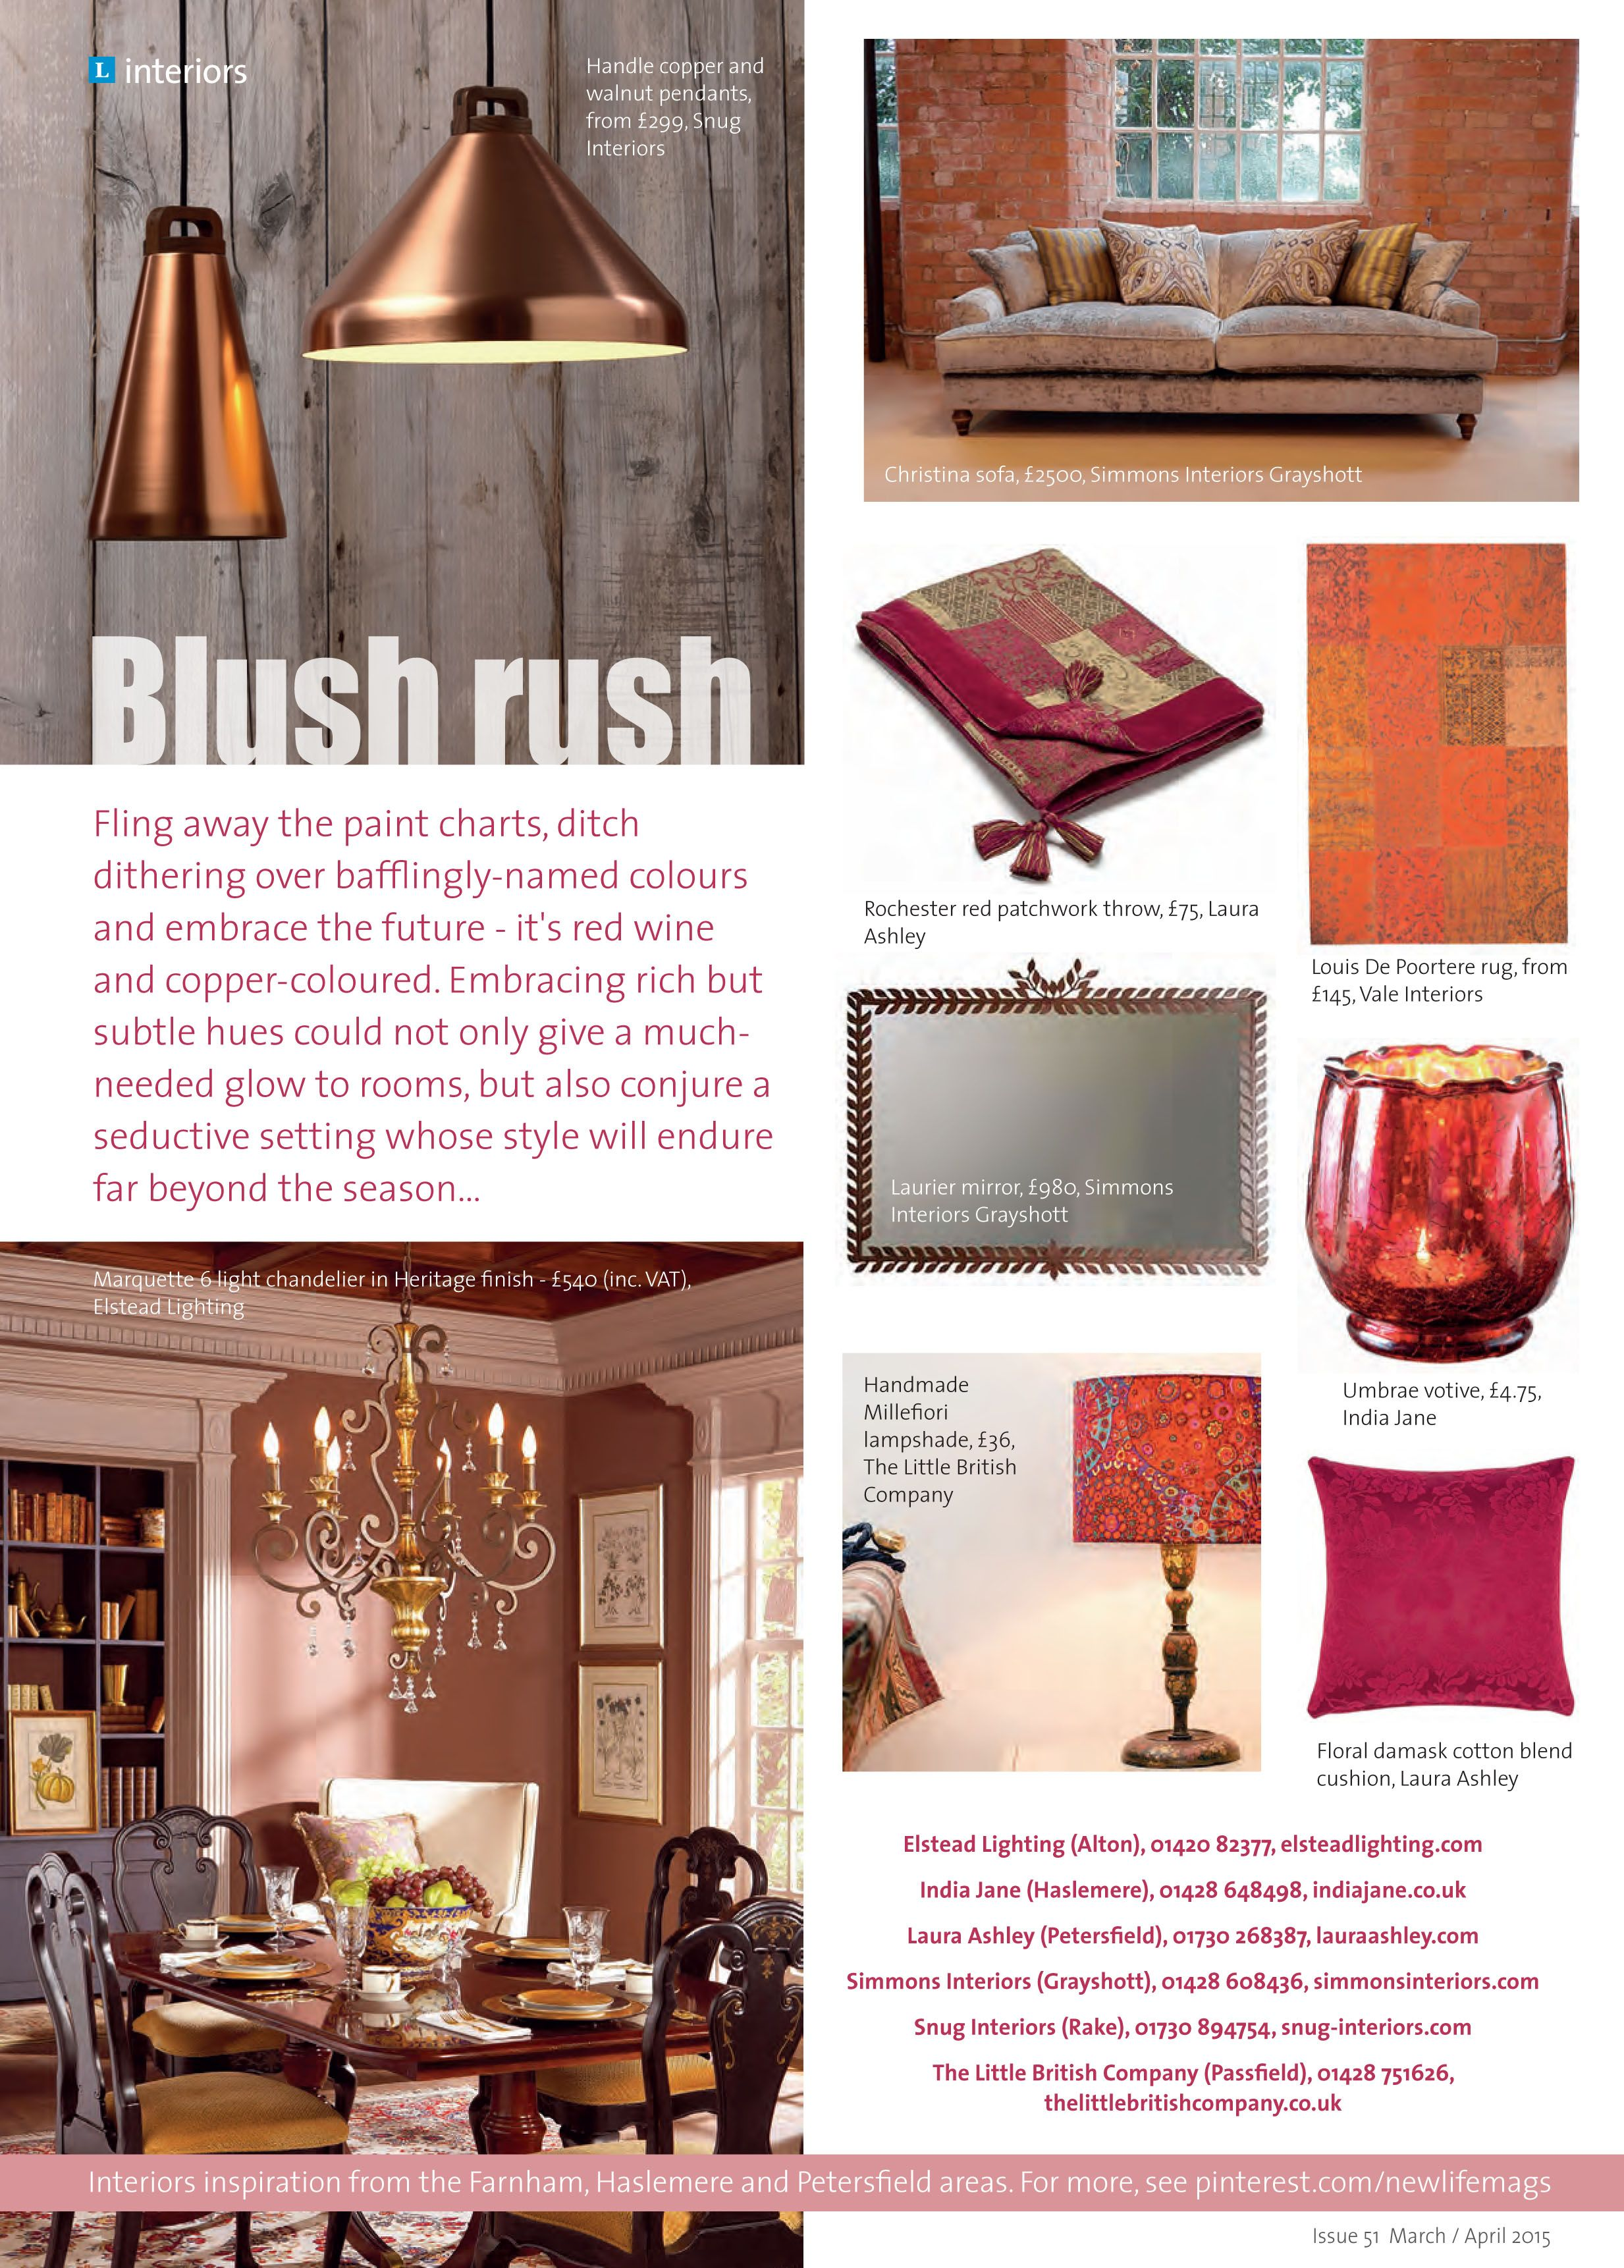 ~ Blush rush ~ Embrace the future - it's red wine and copper-coloured #locallife #Petersfield #Hampshire #interiors #inspiration #spring